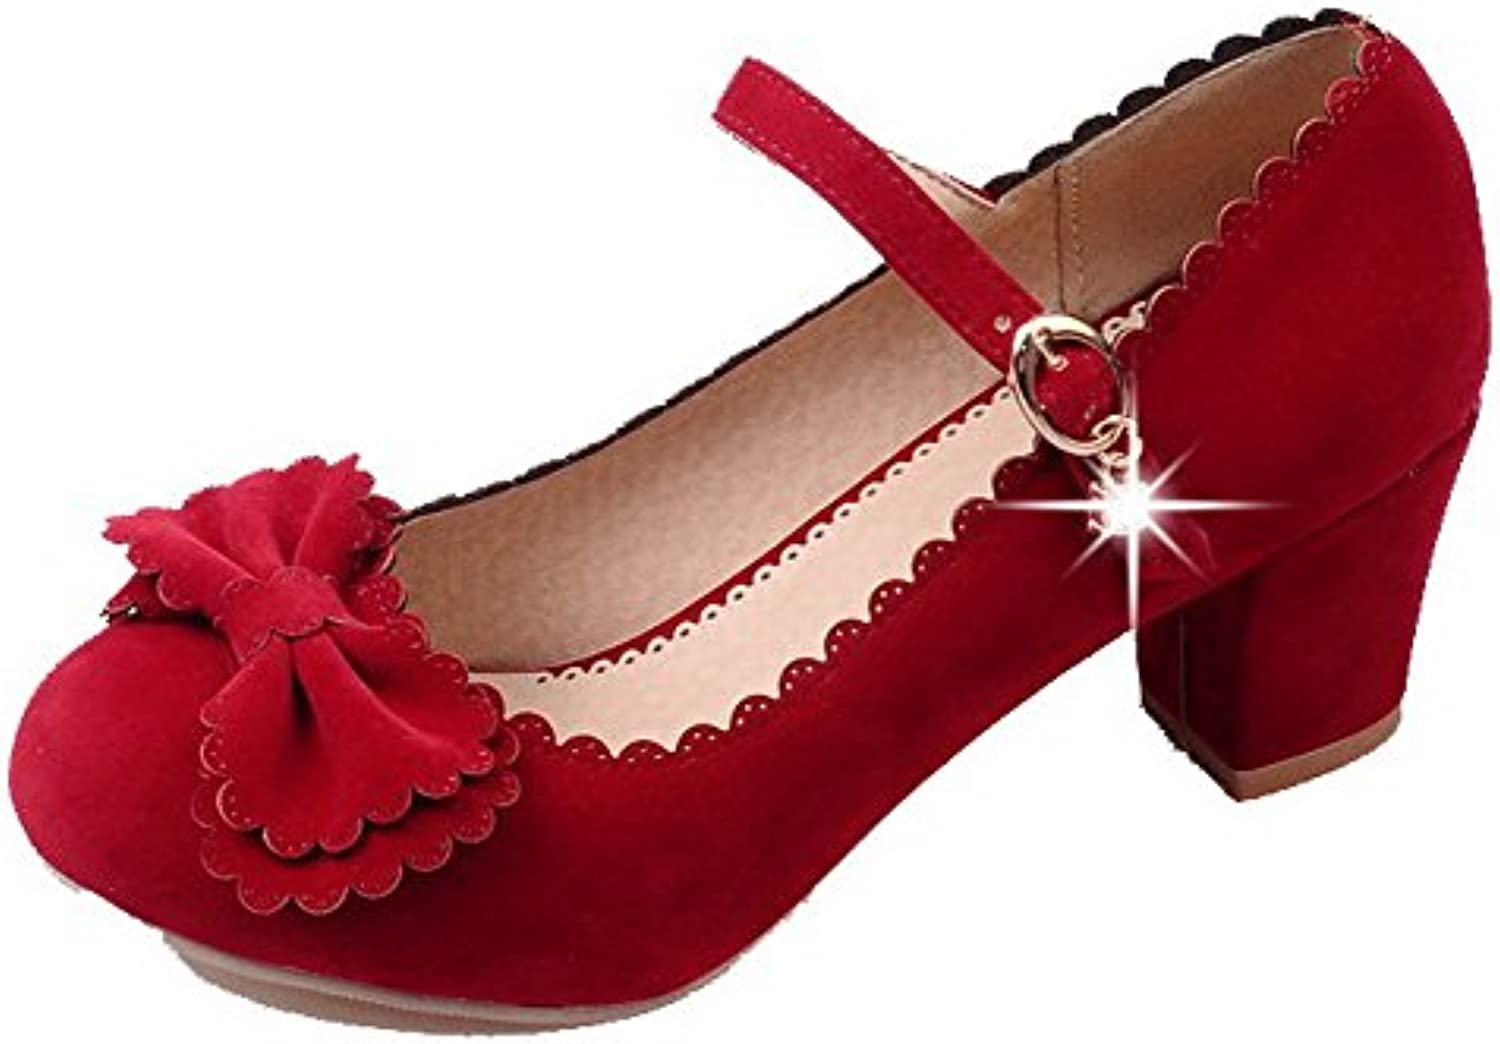 16ae10bc9e6 Odomolor Women s Kitten-Heels Solid Solid Solid Buckle Frosted Round-Toe  Pumps-Shoes